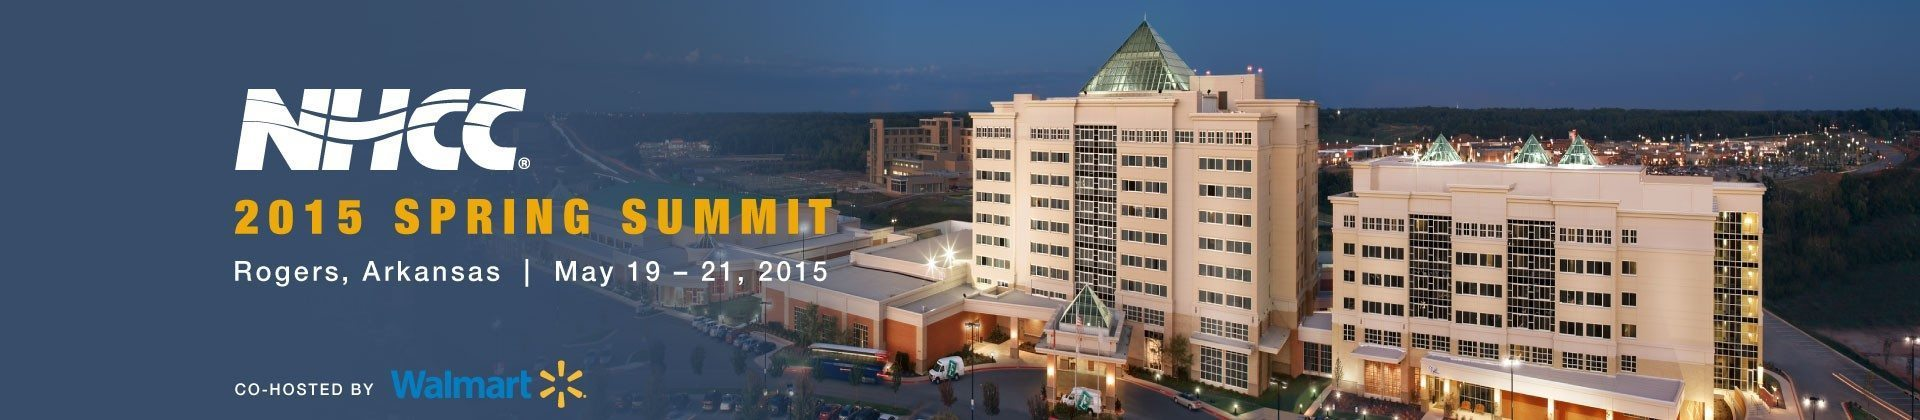 NHCC 2015 Spring Summit save the date